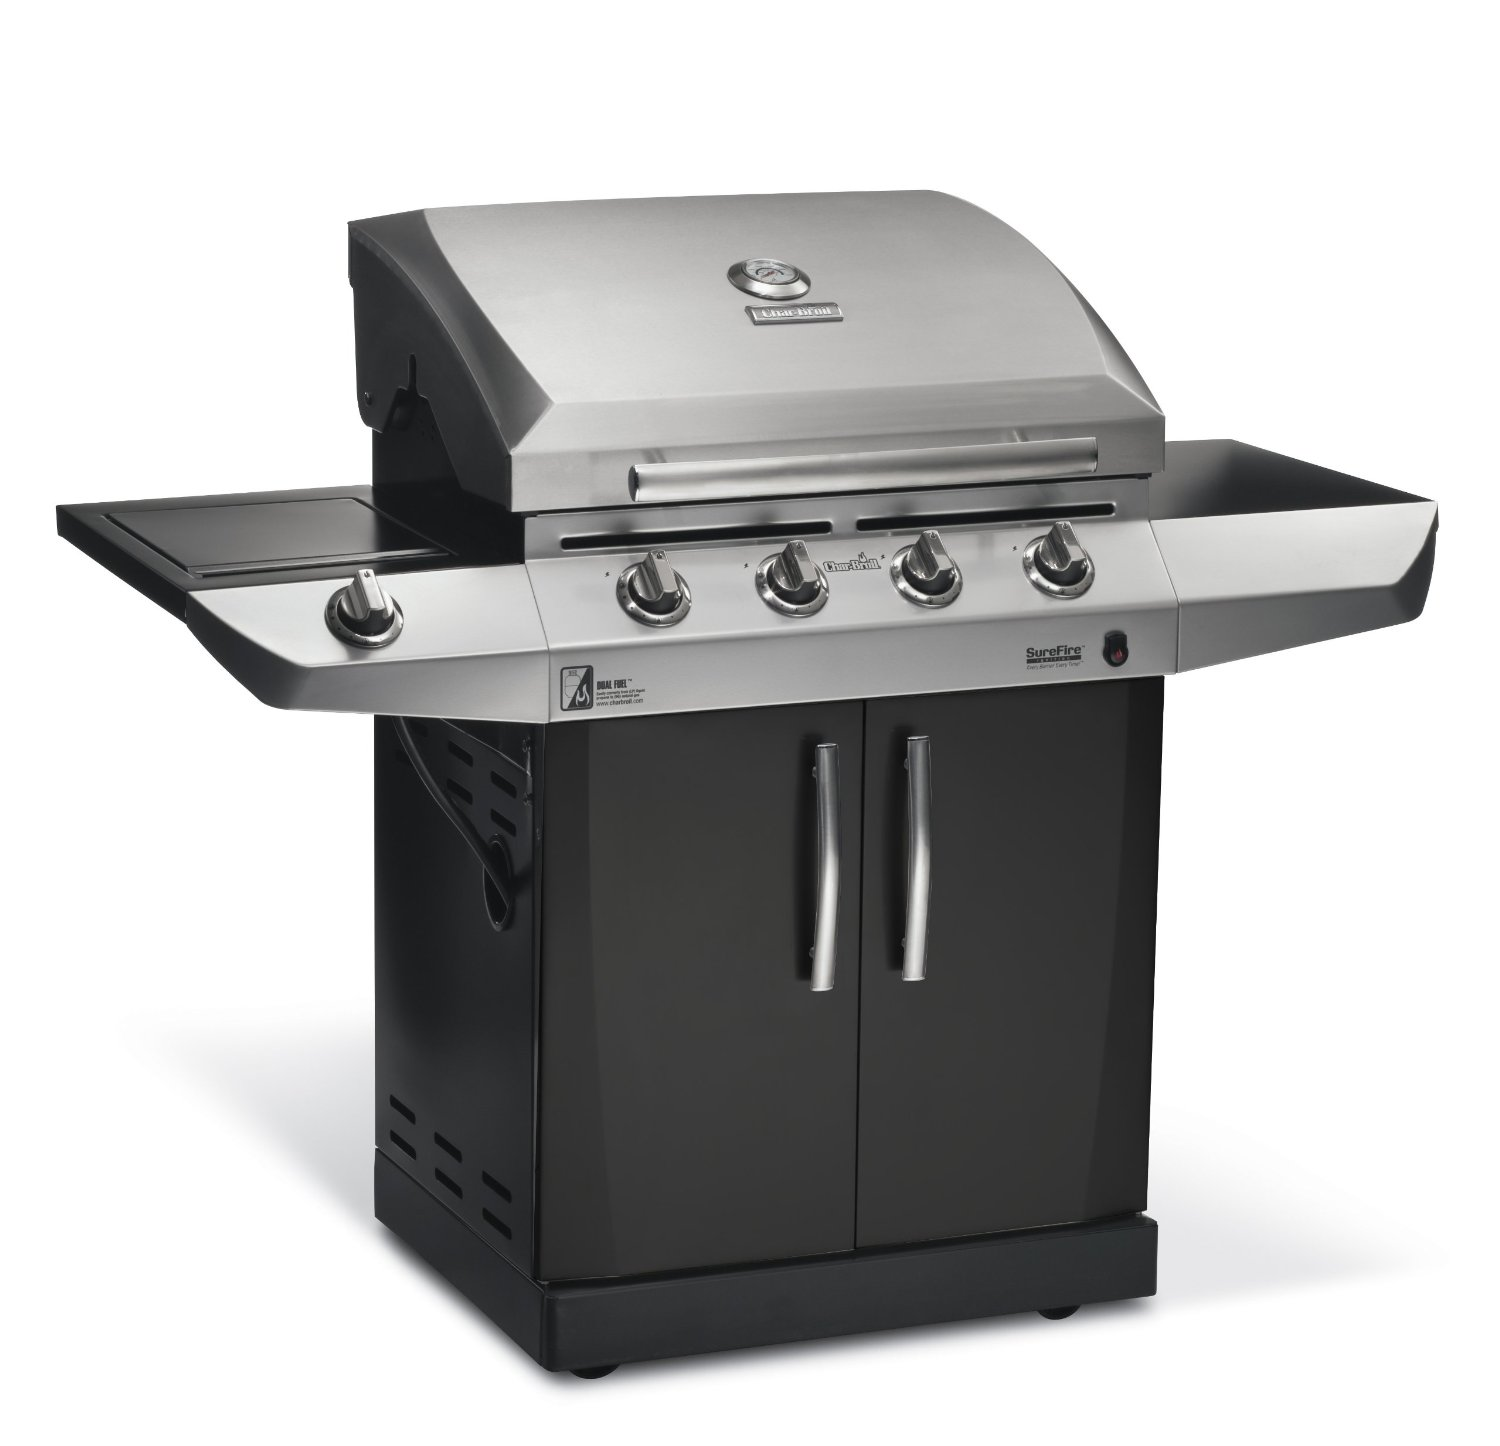 Broil Gasgrill Char Broil Magnum 500 Review Dual Fuel Gas Grill Meet And Grill